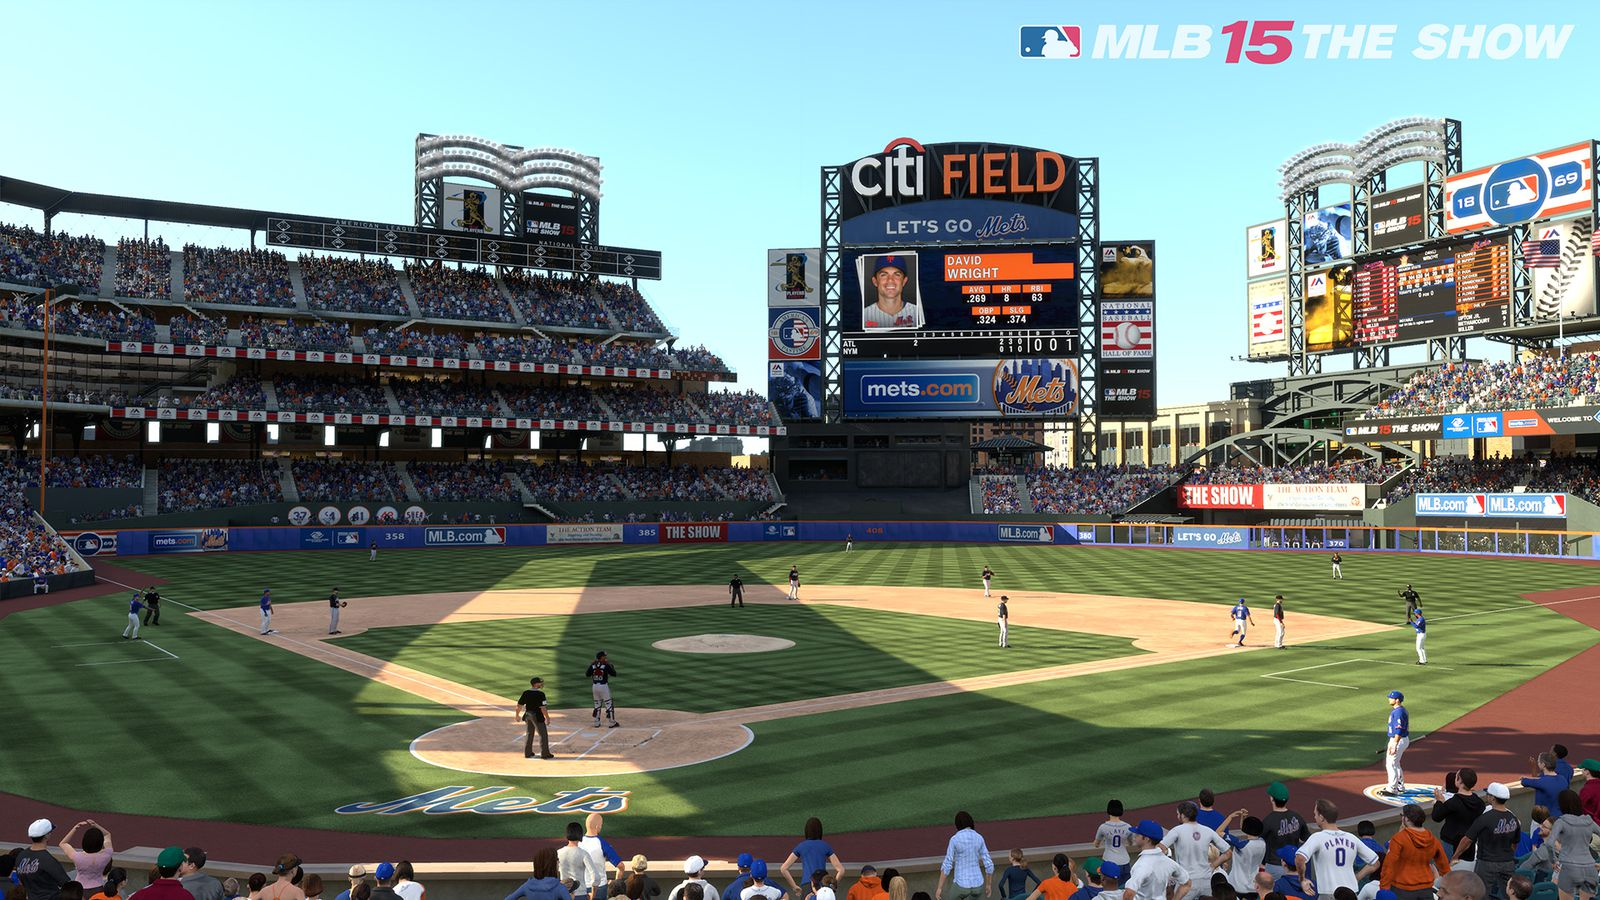 MLB 15 The Show trailer delivers seasonal sunlight and shadows